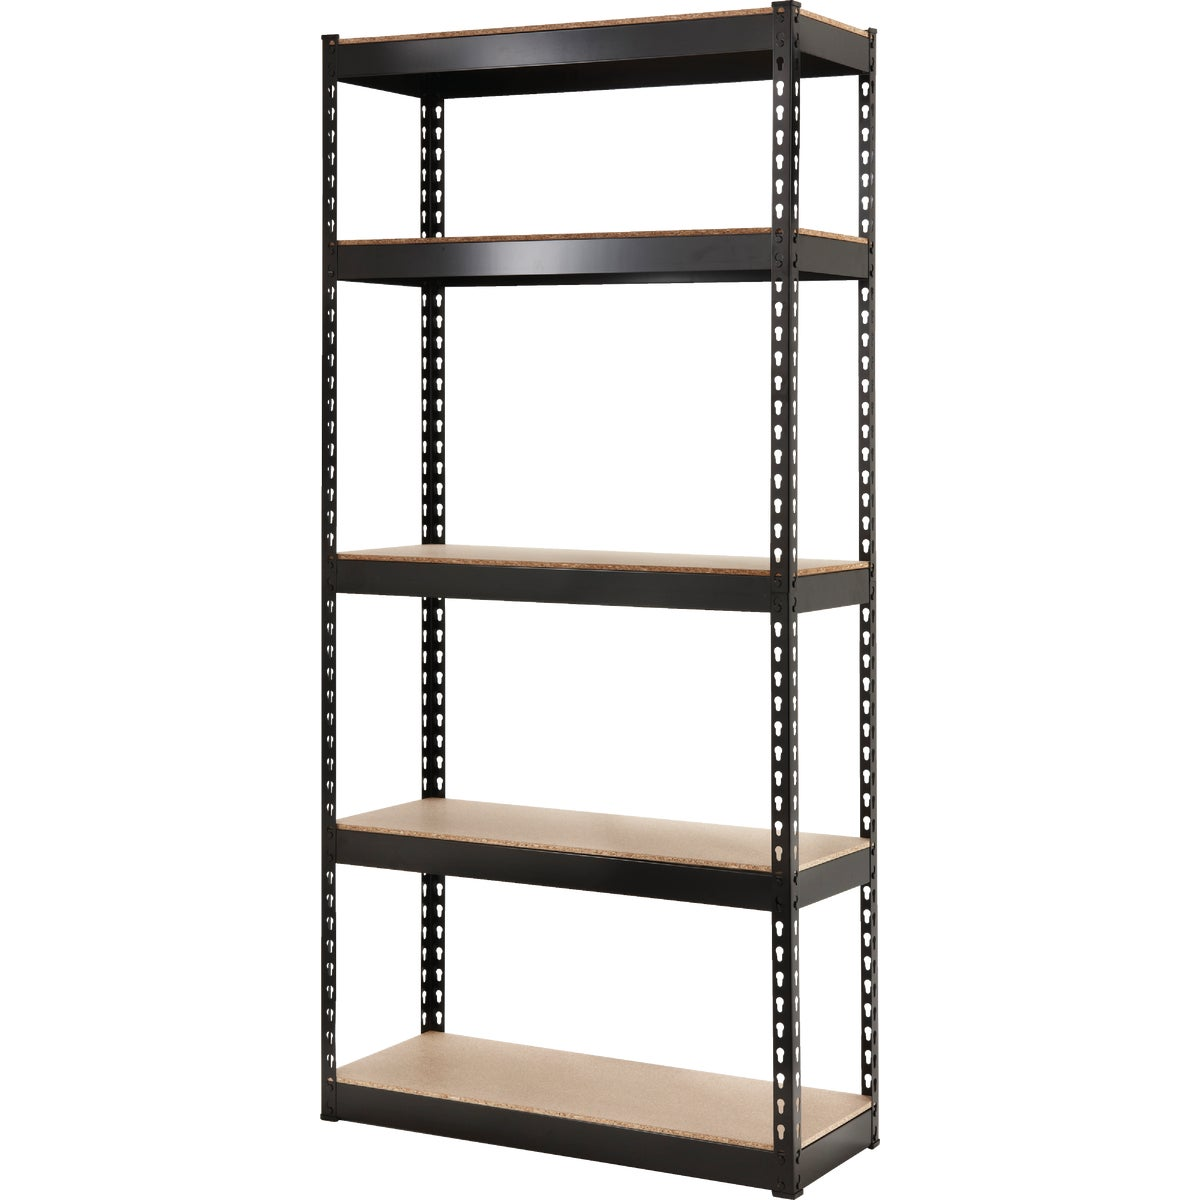 34X14X72 METAL SHELVING